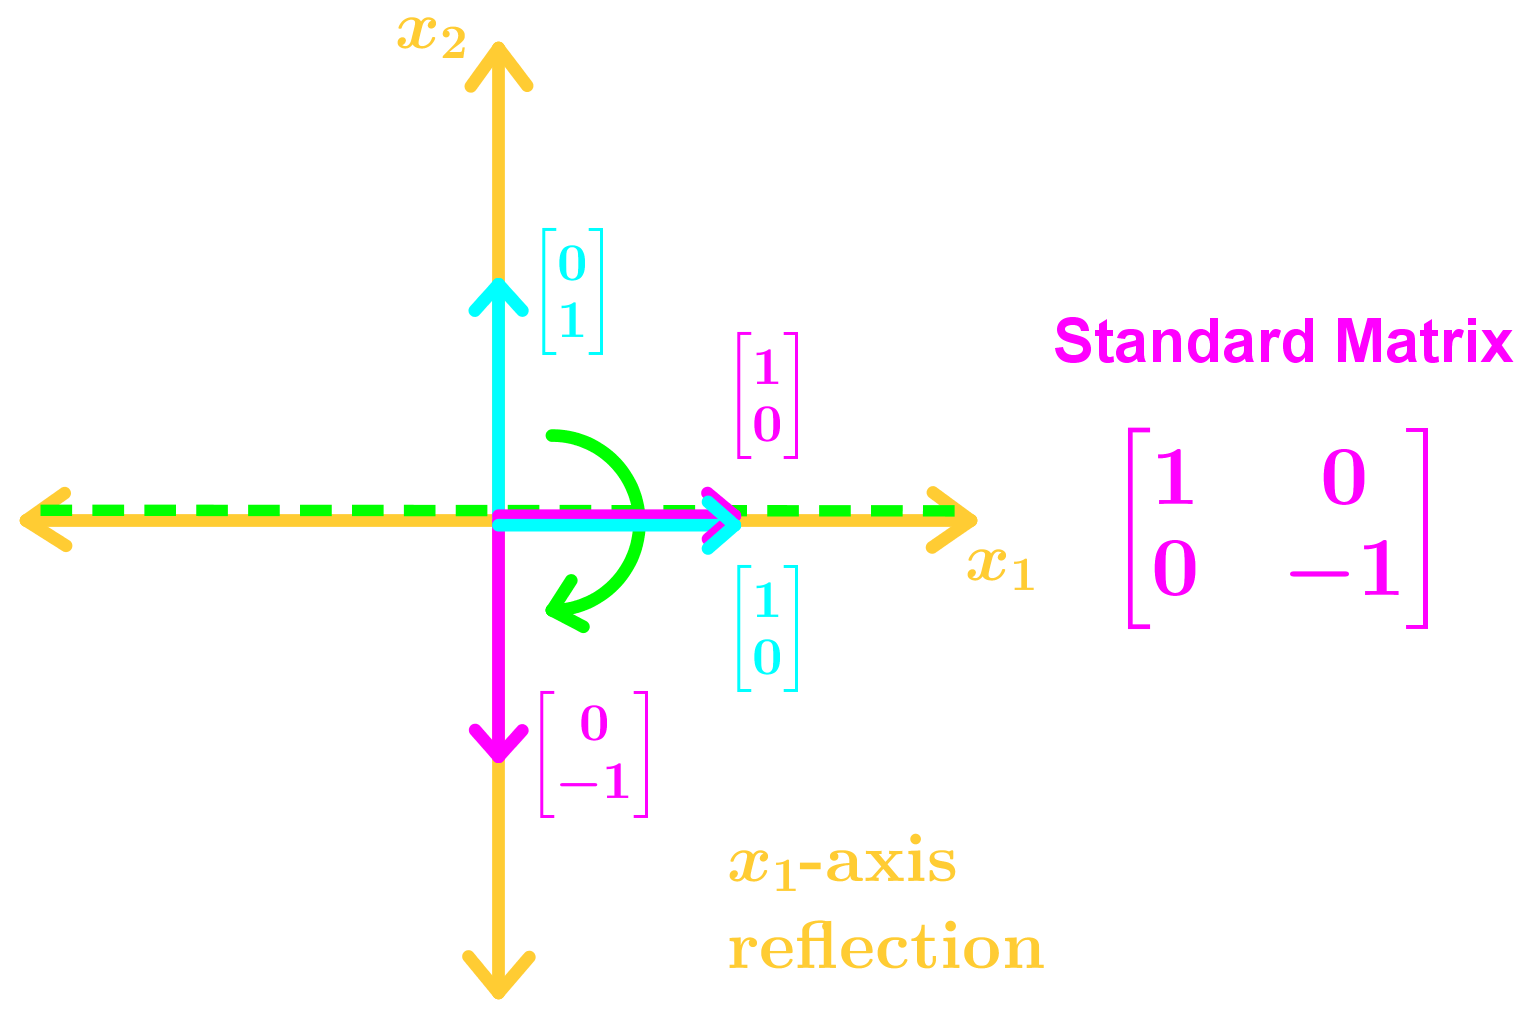 x1-axis reflection